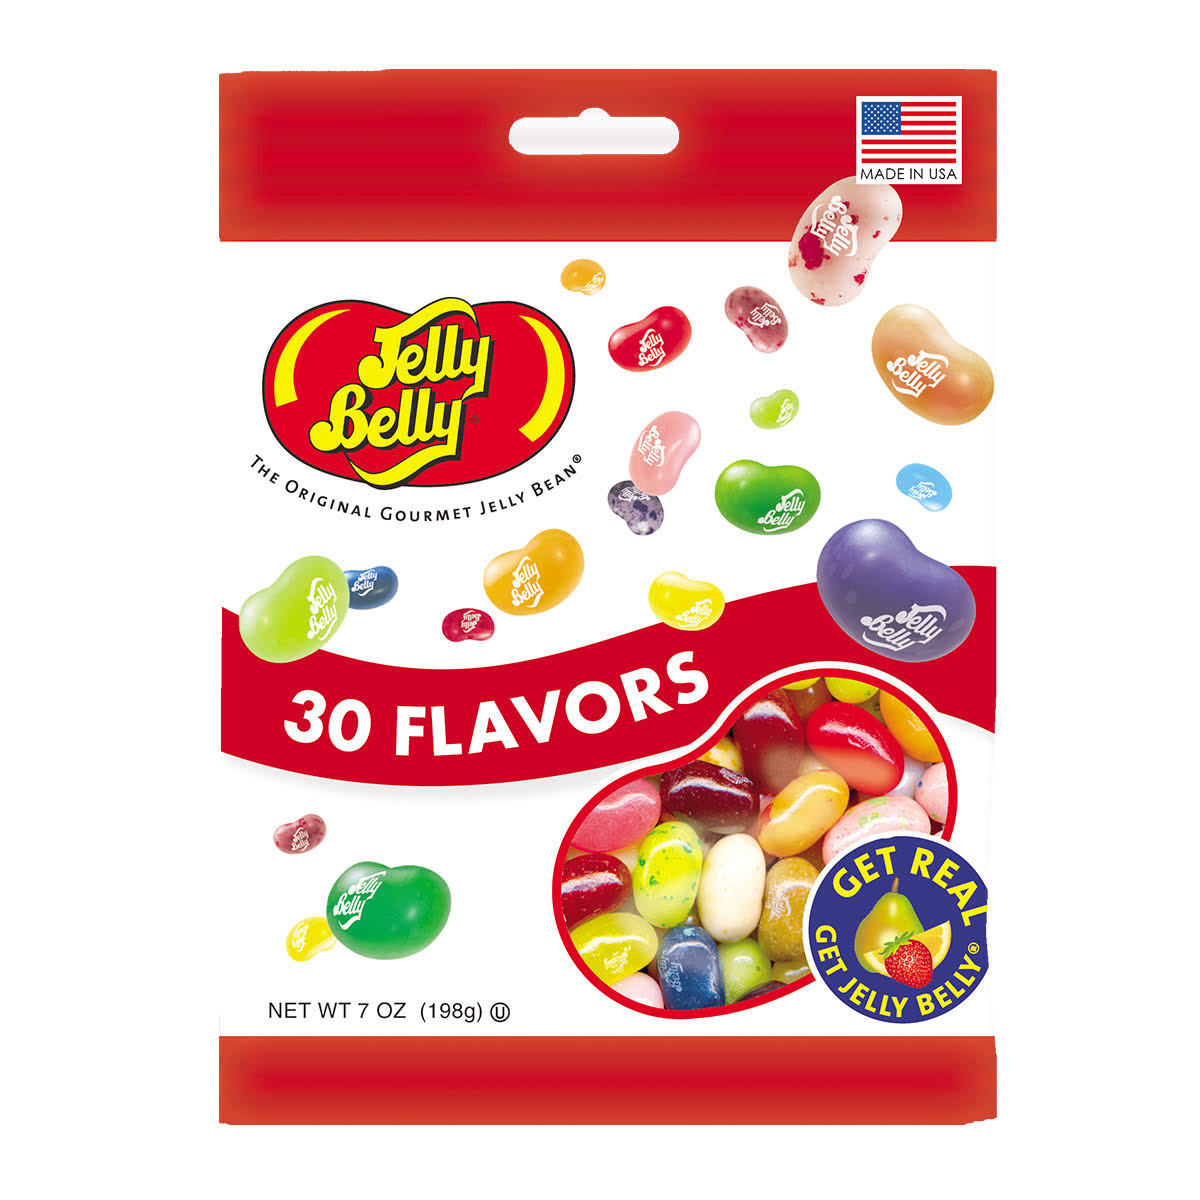 Jelly Belly Gourmet Jelly Beans - 30 Flavors, 7oz